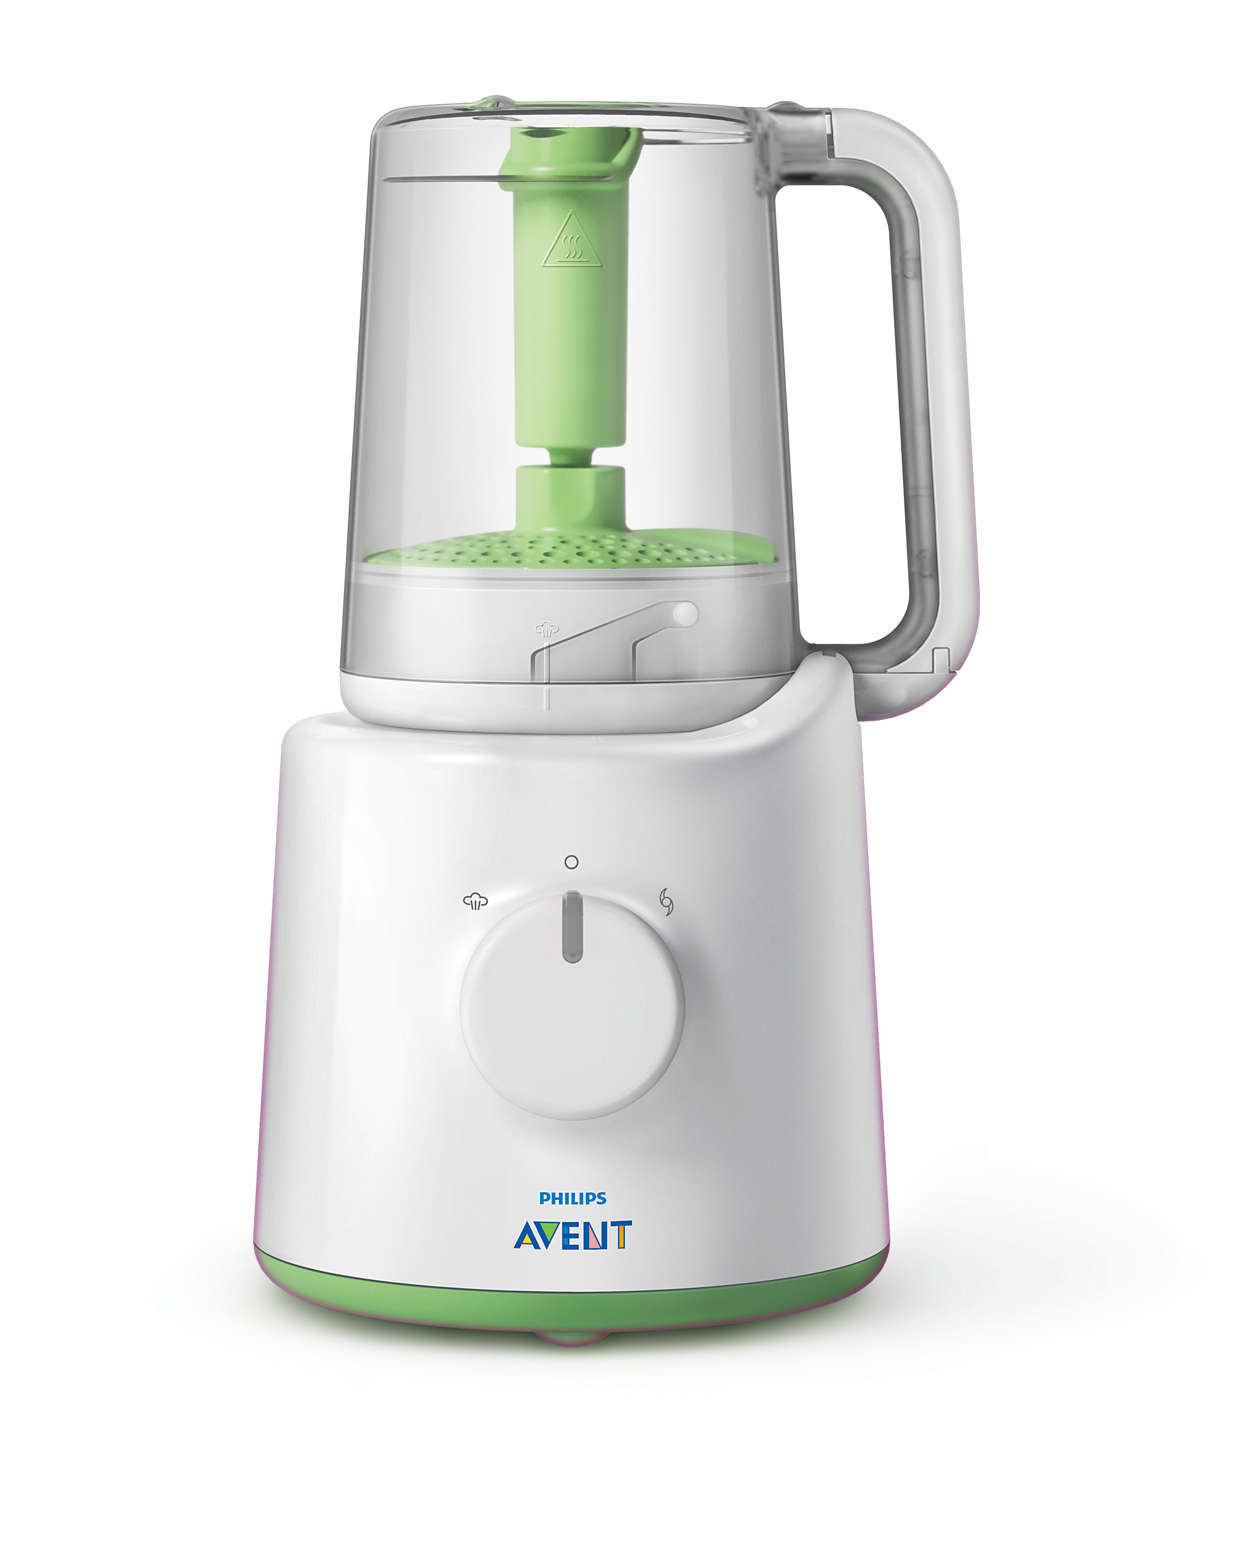 Philips Avent 2-in-1 Babyfood Maker image